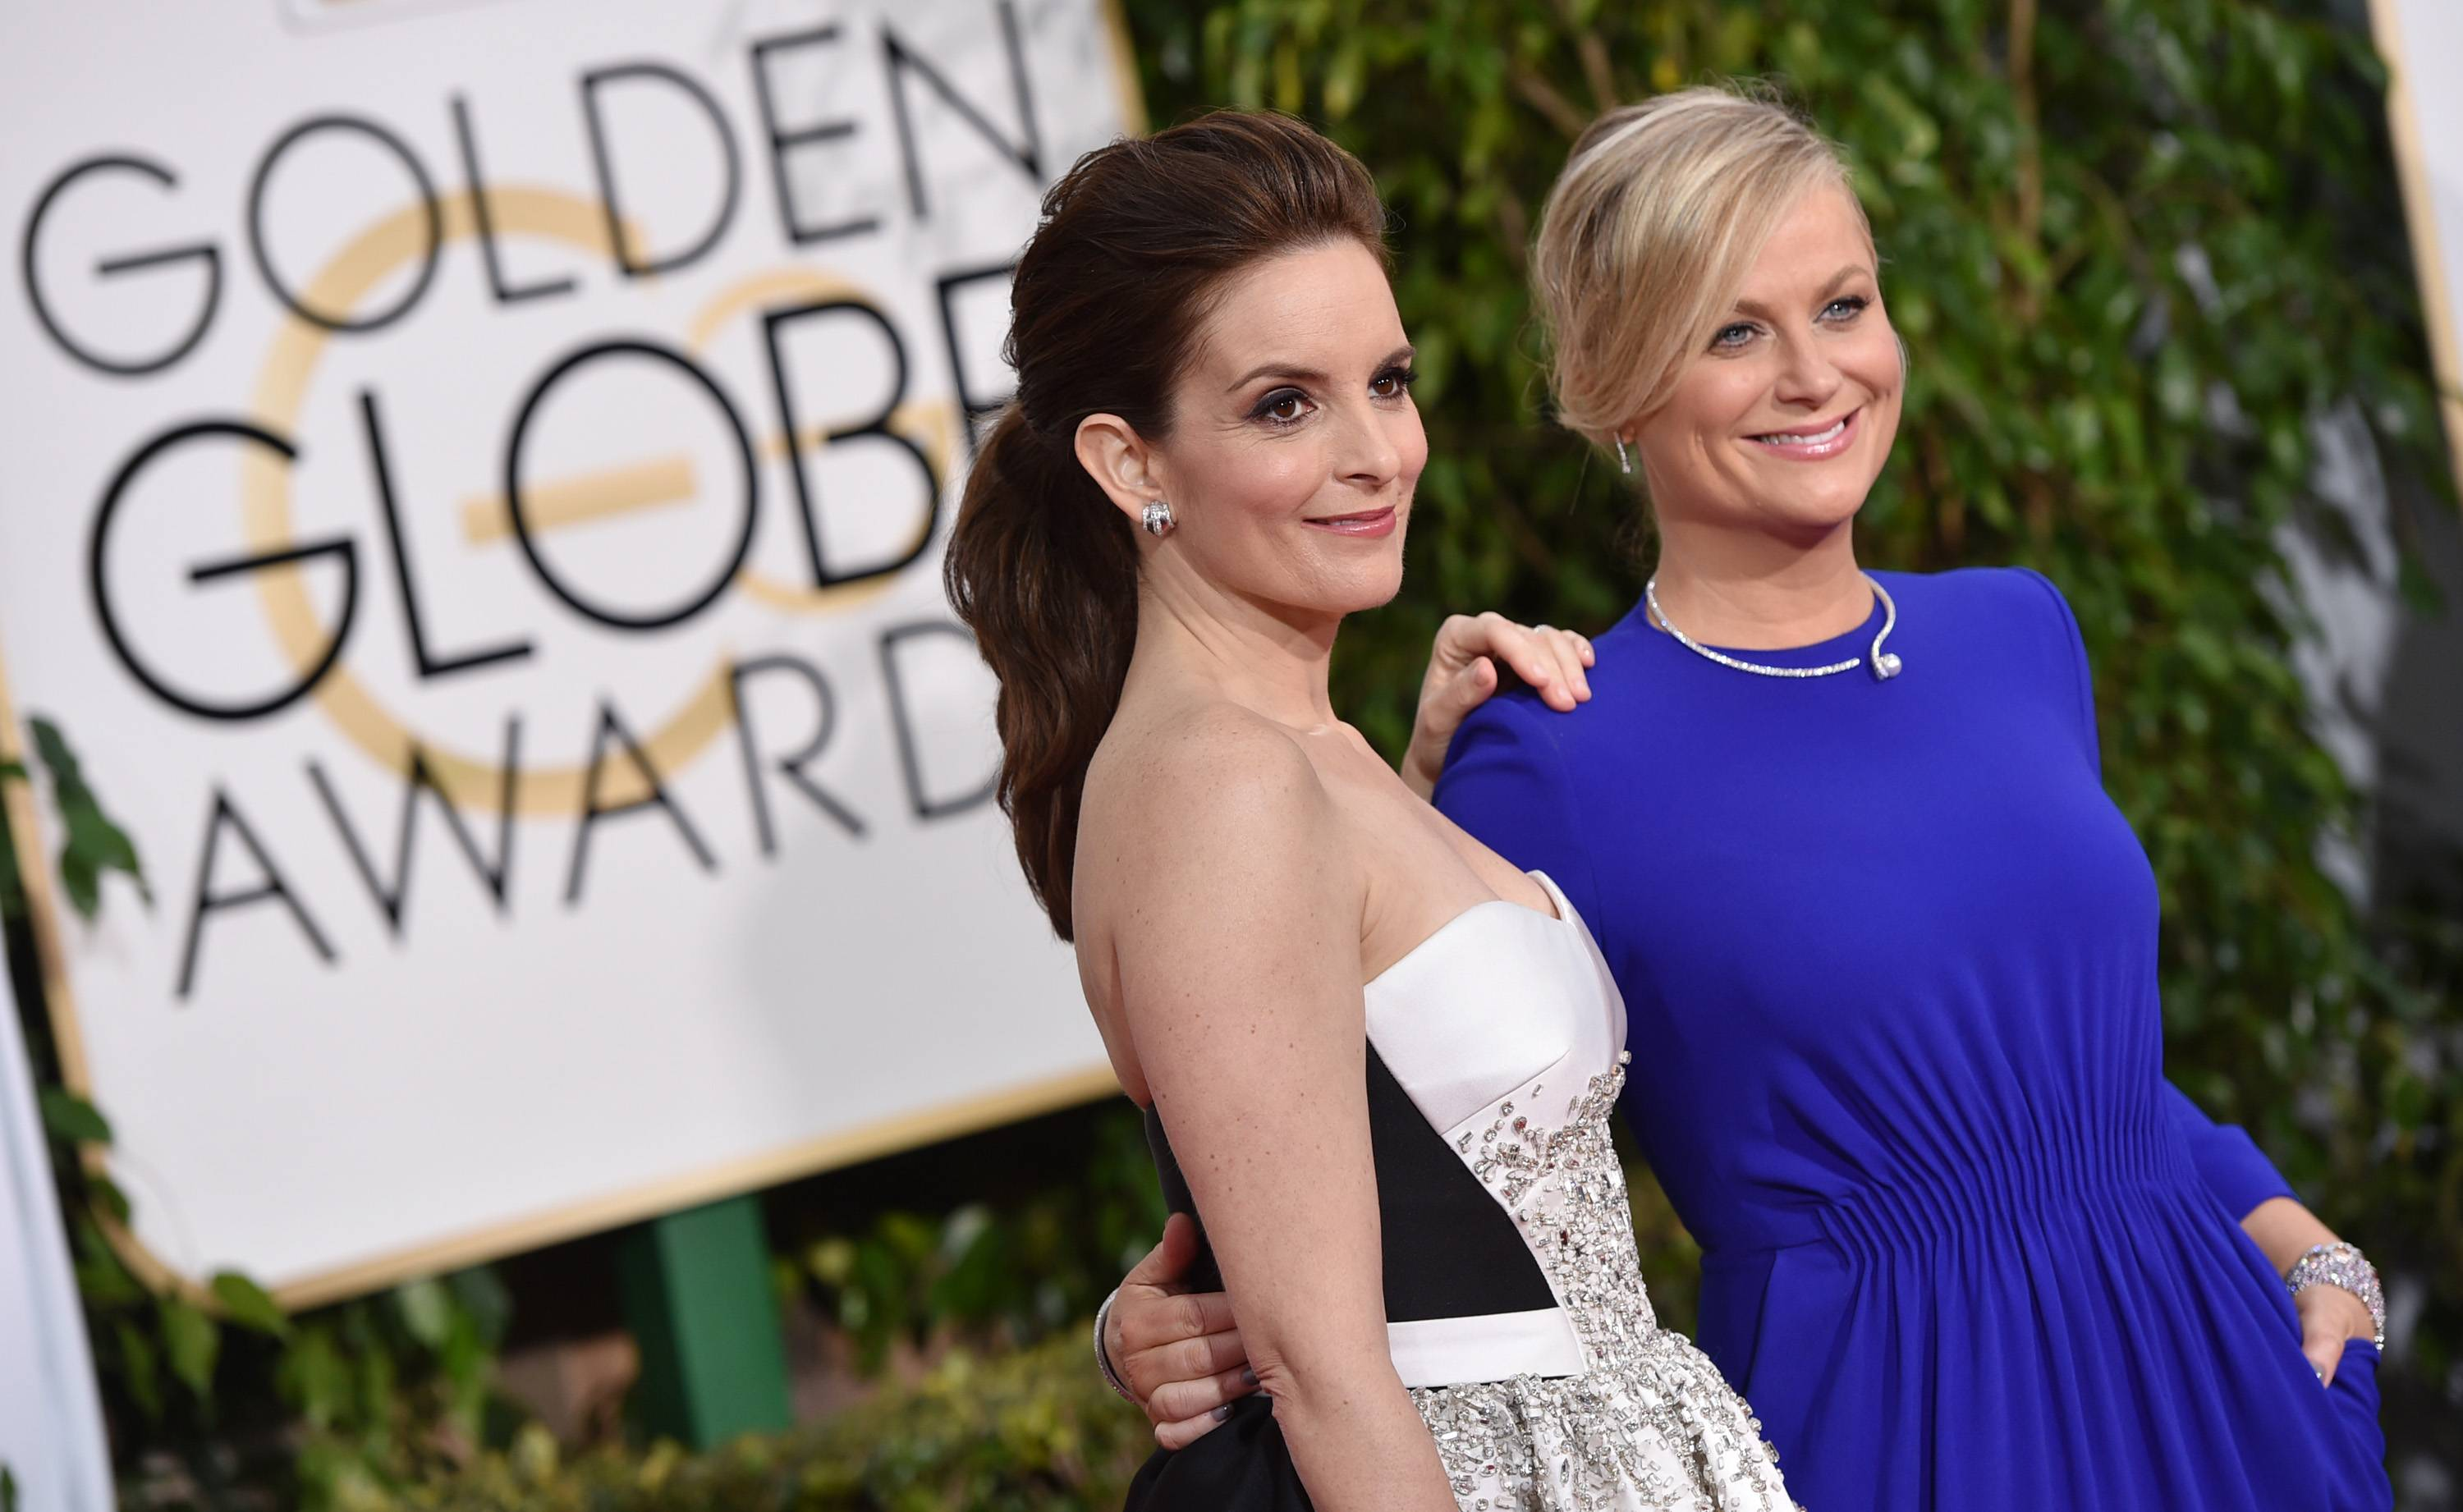 Co-hosts Tina Fey, left, and Amy Poehler arrive at the 72nd annual Golden Globe Awards at the Beverly Hilton Hotel on Sunday.